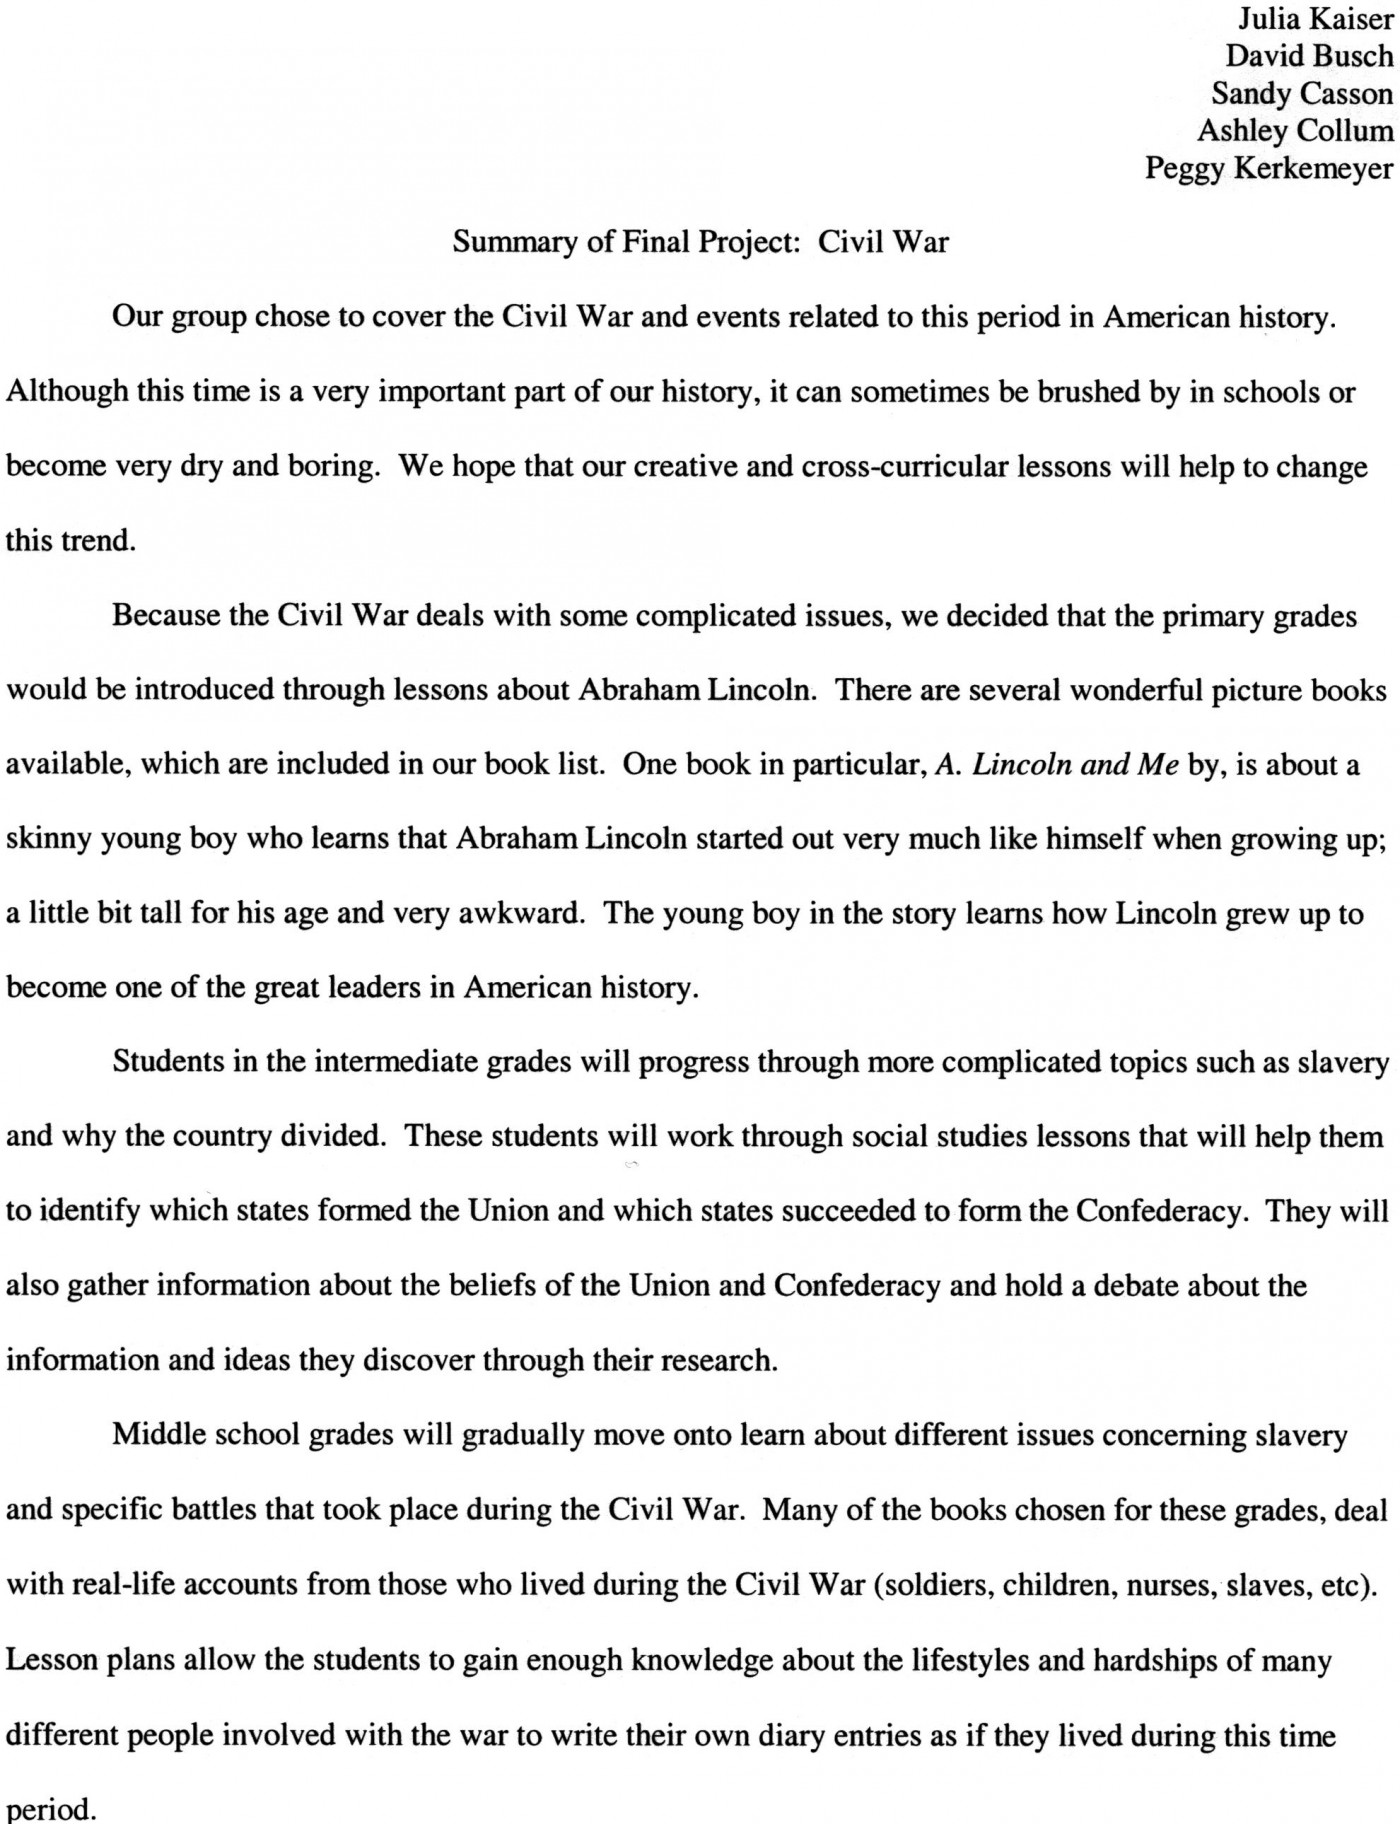 008 Academic Research Paper Essays Civil War Essay Hooks Surprising 1400